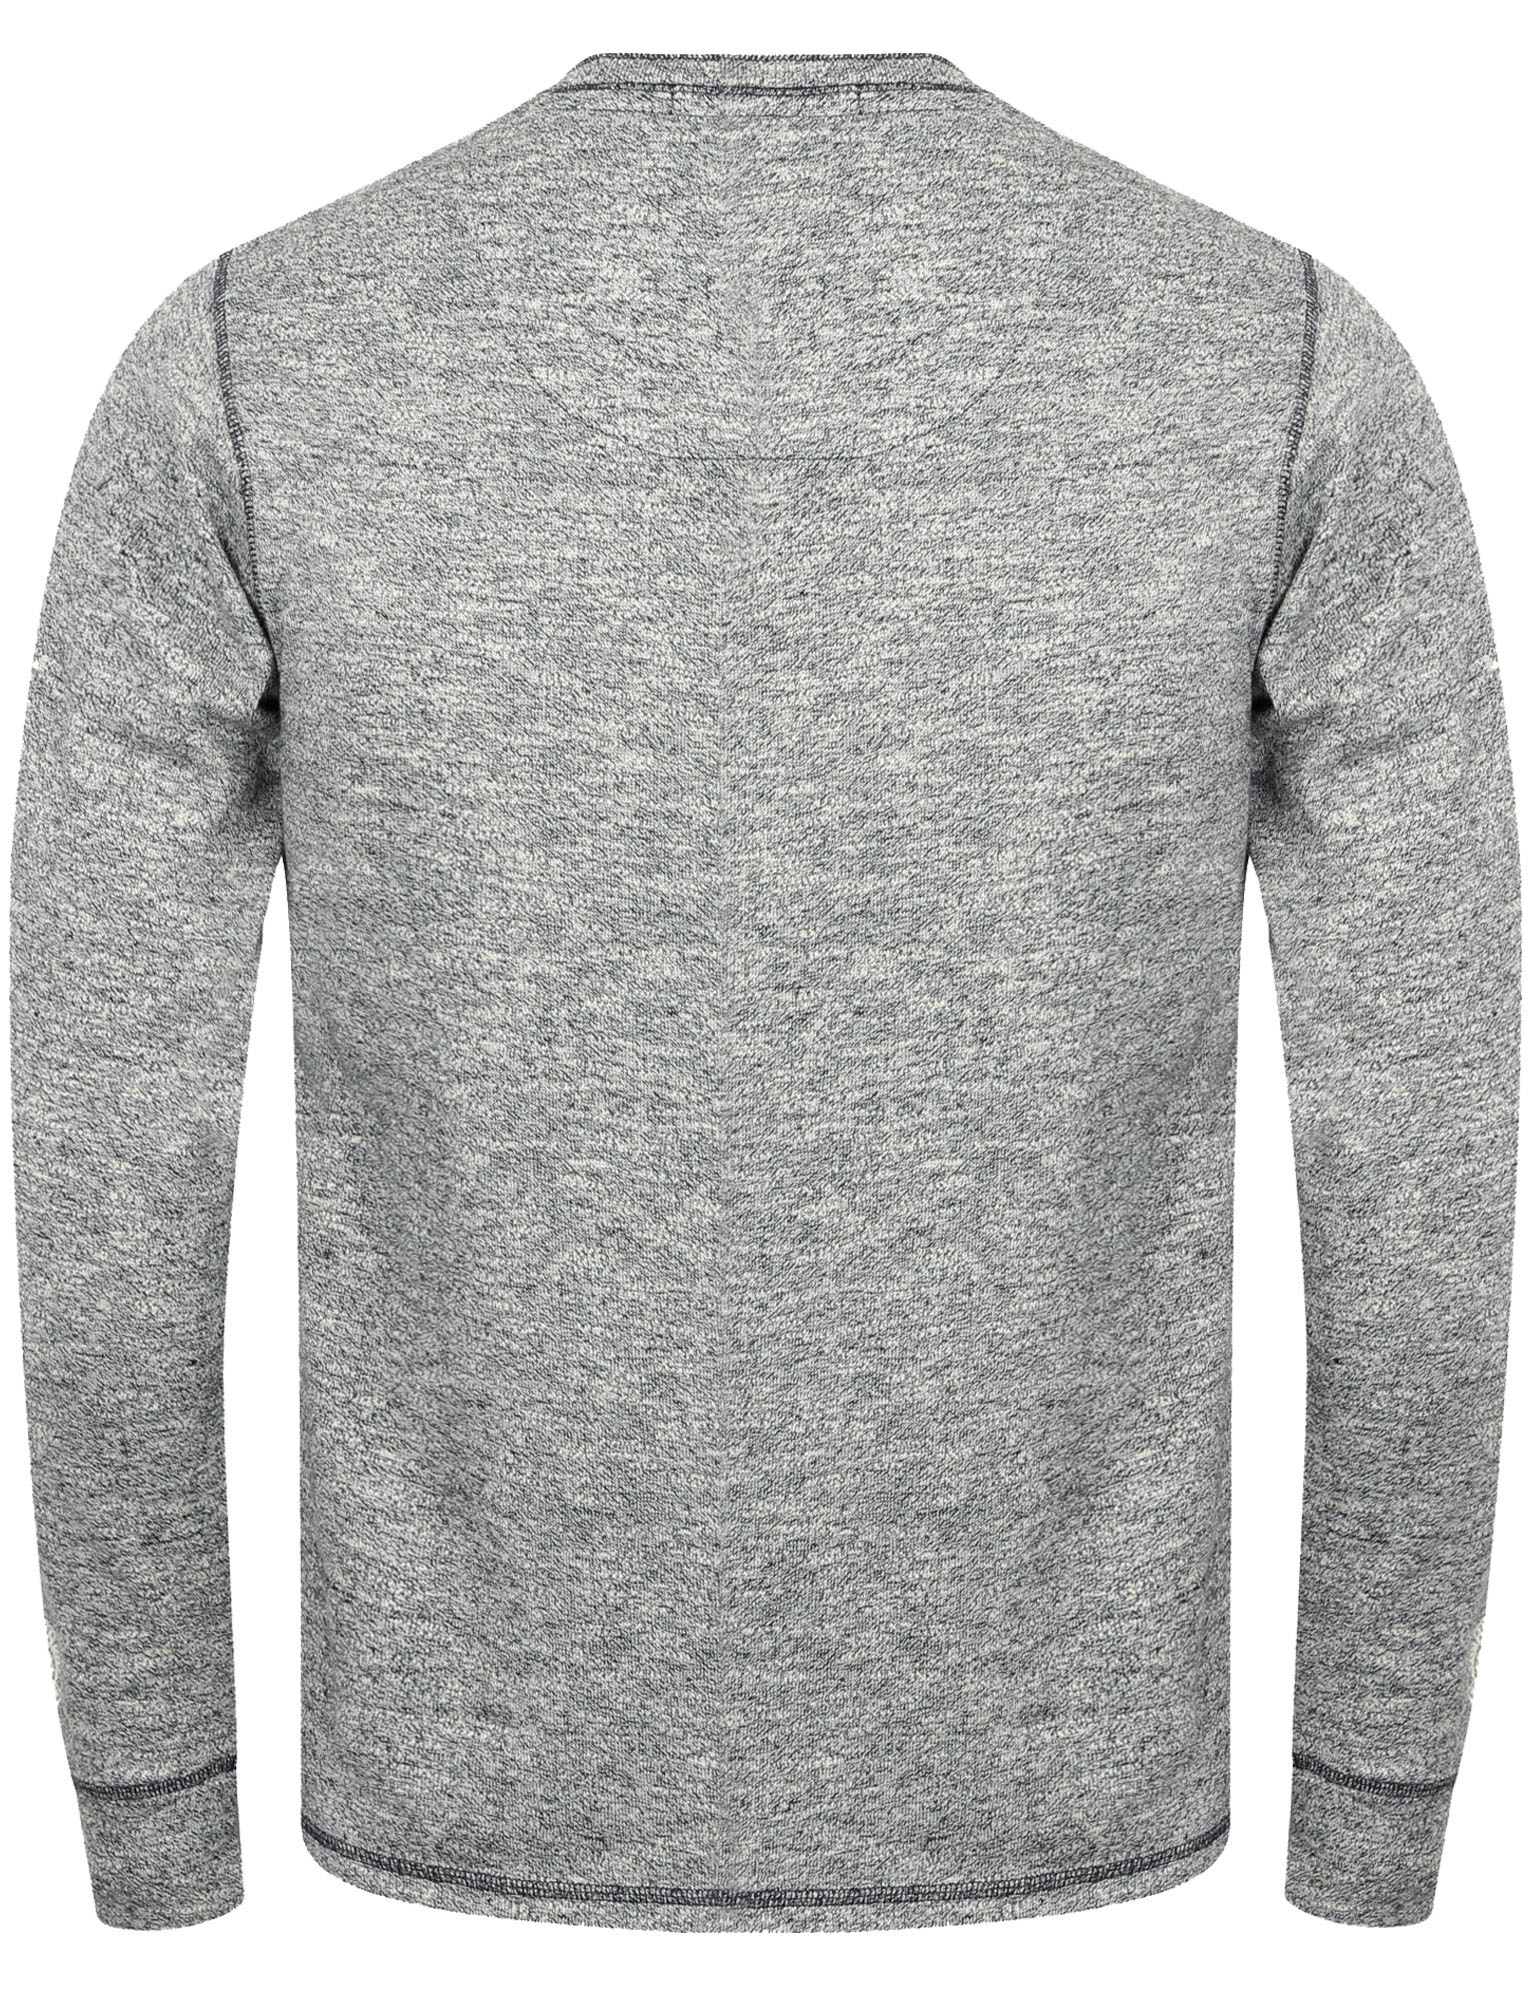 New-Mens-Tokyo-Laundry-Branded-Soft-Jersey-Long-Sleeve-Tops-T-Shirts-Size-S-XL thumbnail 9